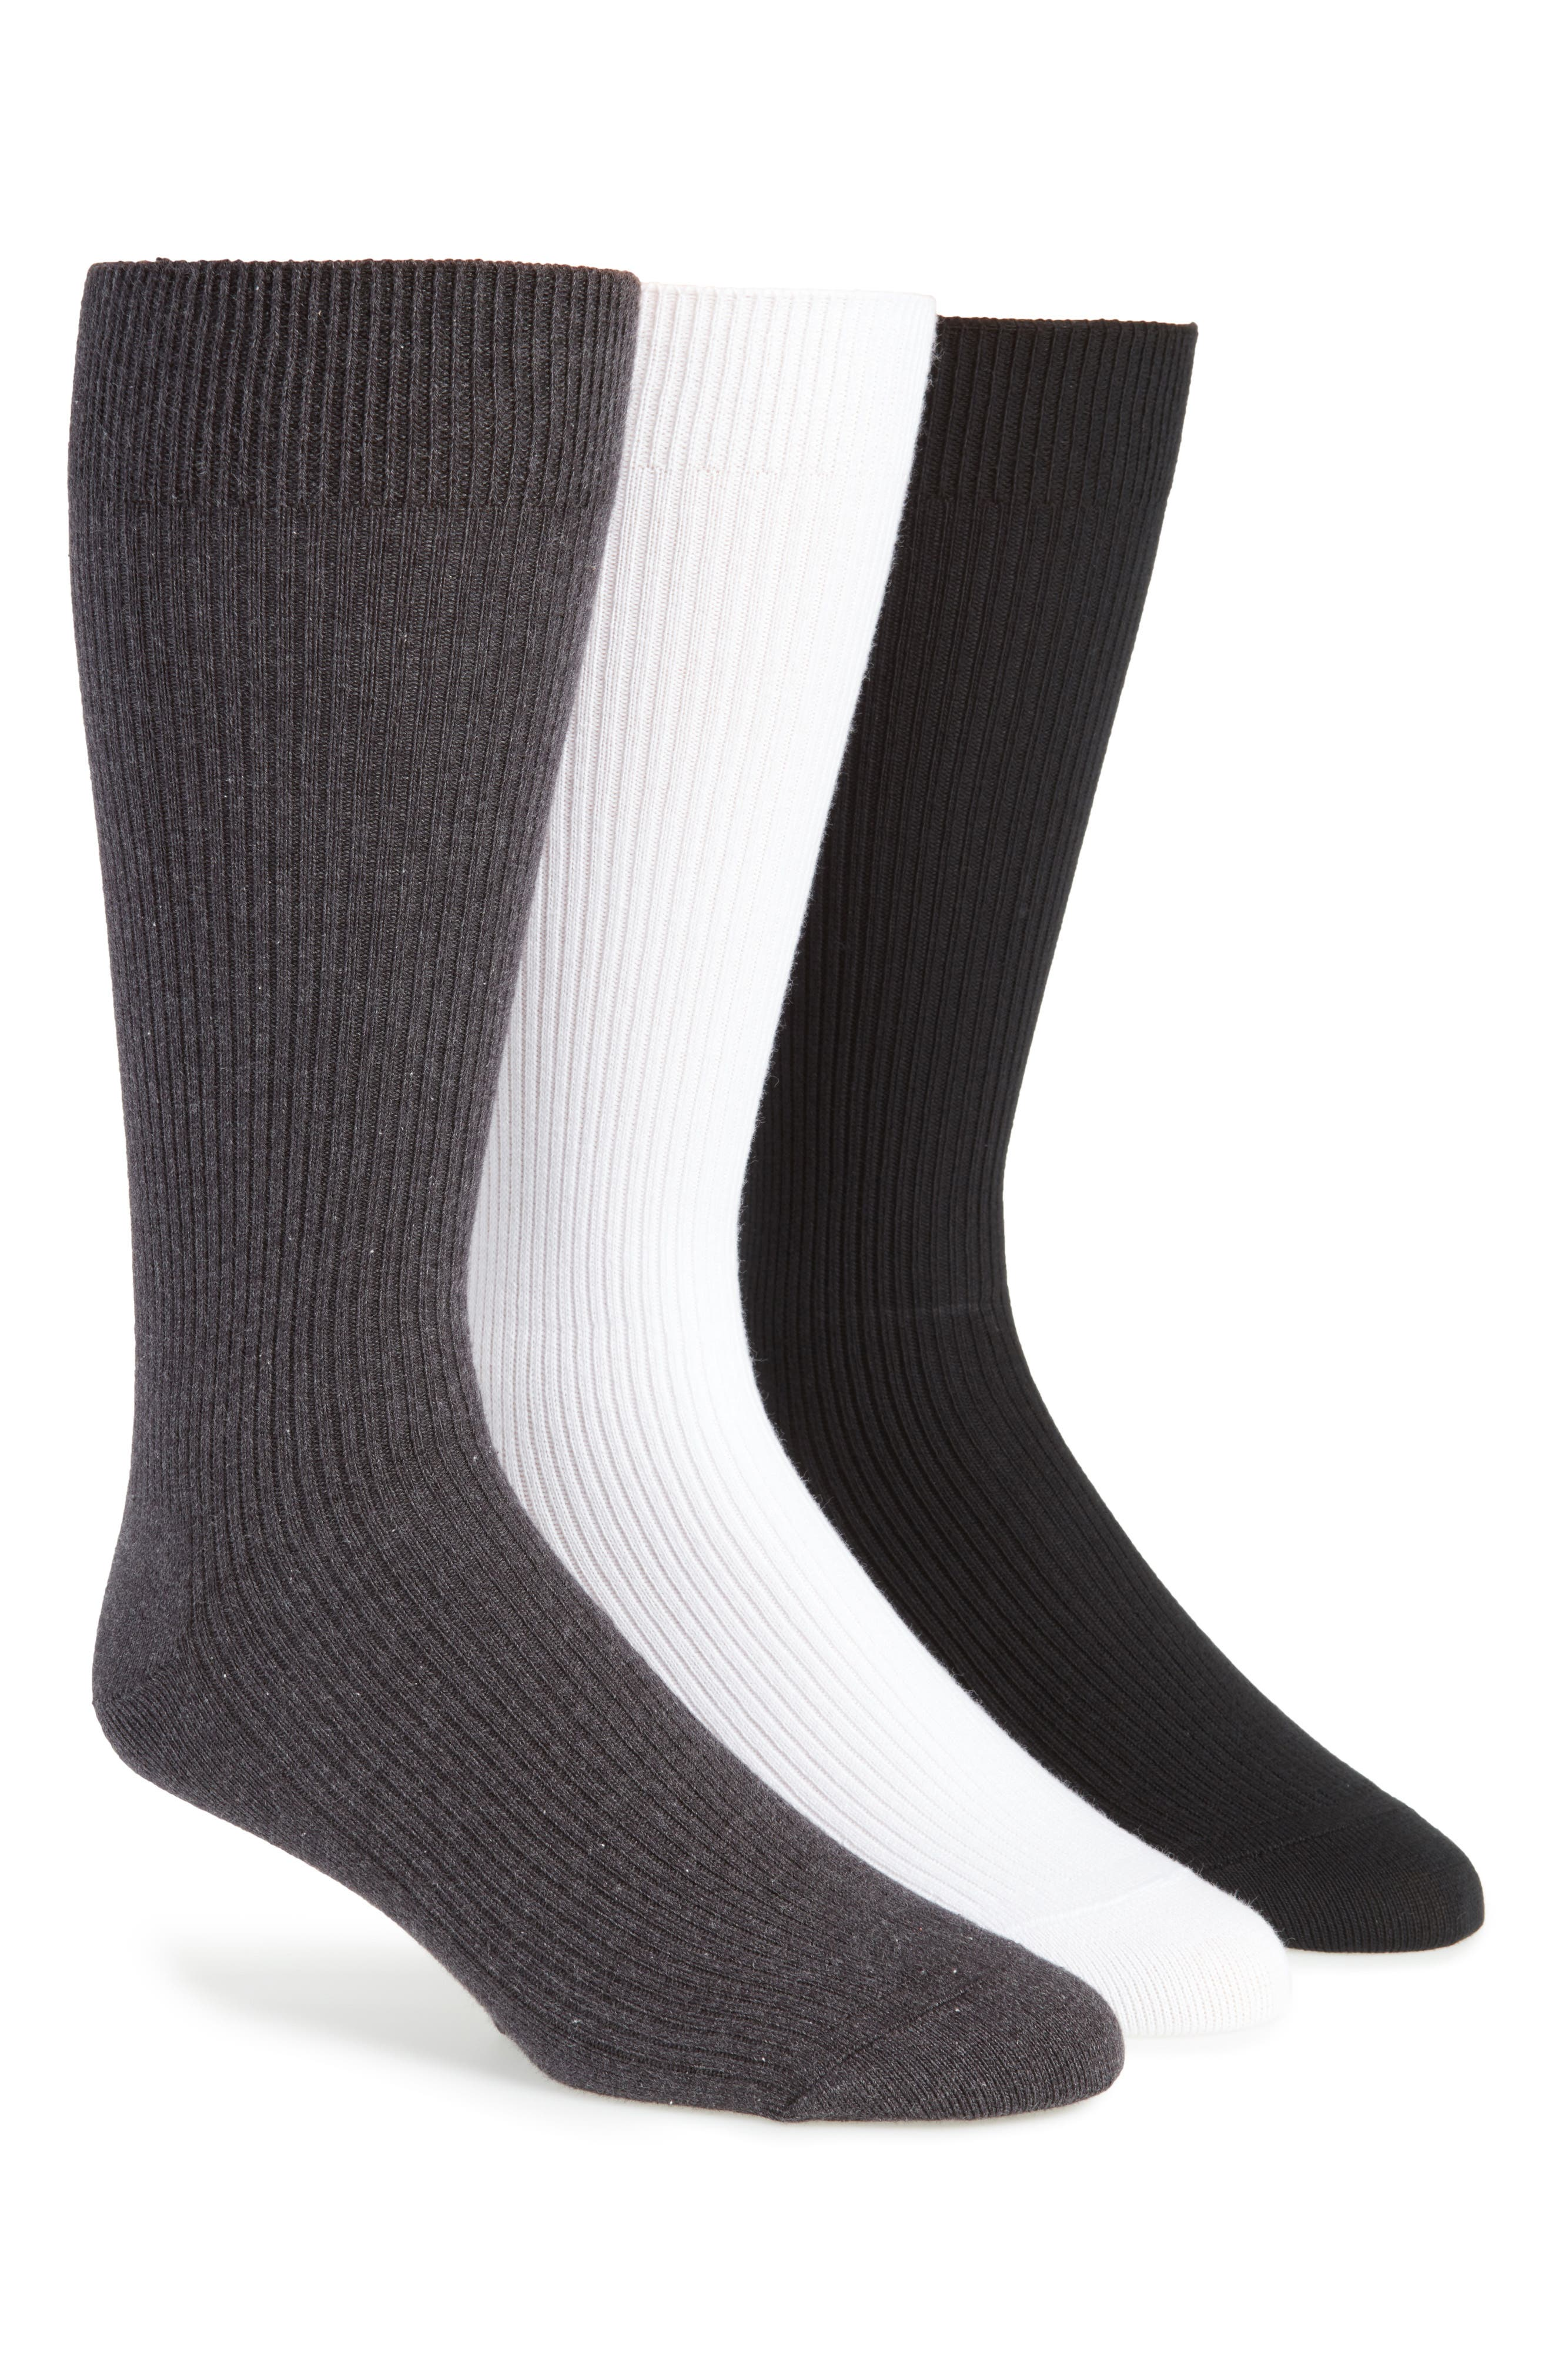 Main Image - Nordstrom Men's Shop 3-Pack Socks